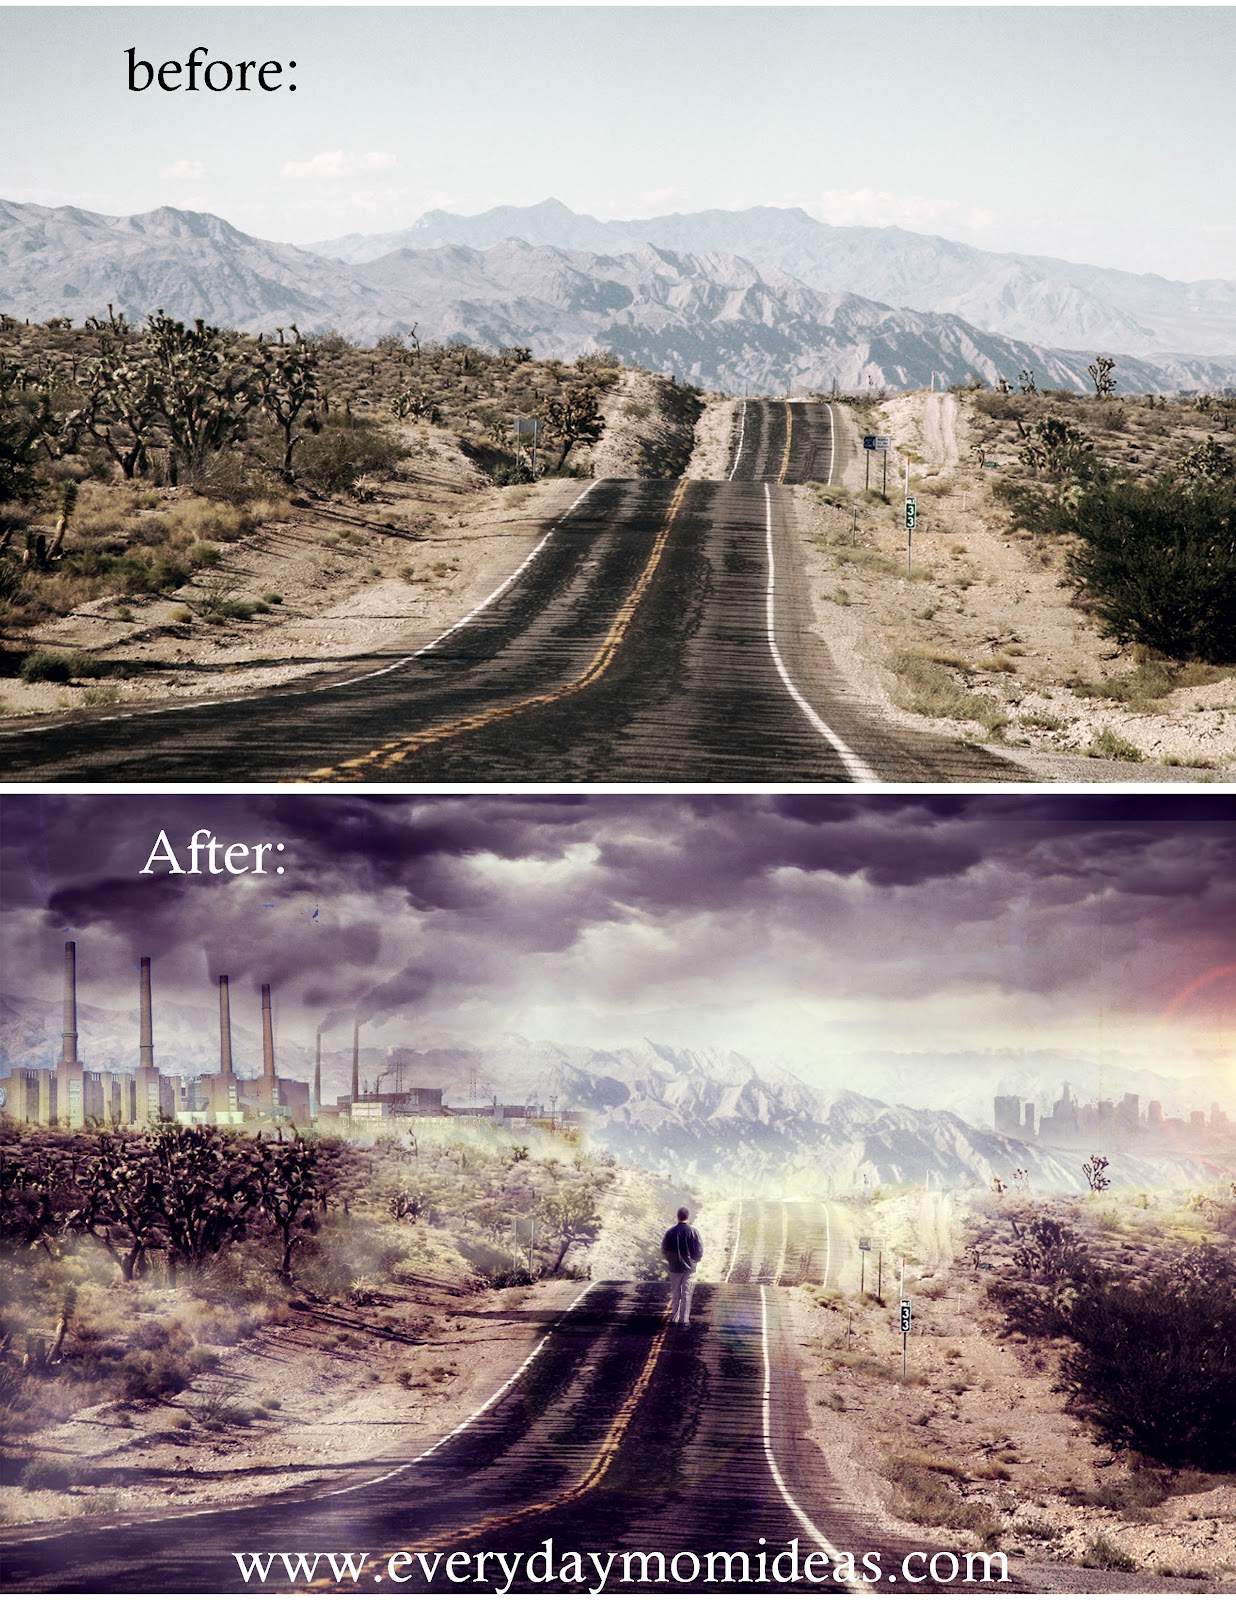 Cool Photoshop Ideas Projects  - Julia Deleeuw Dystopian Photoshop Project